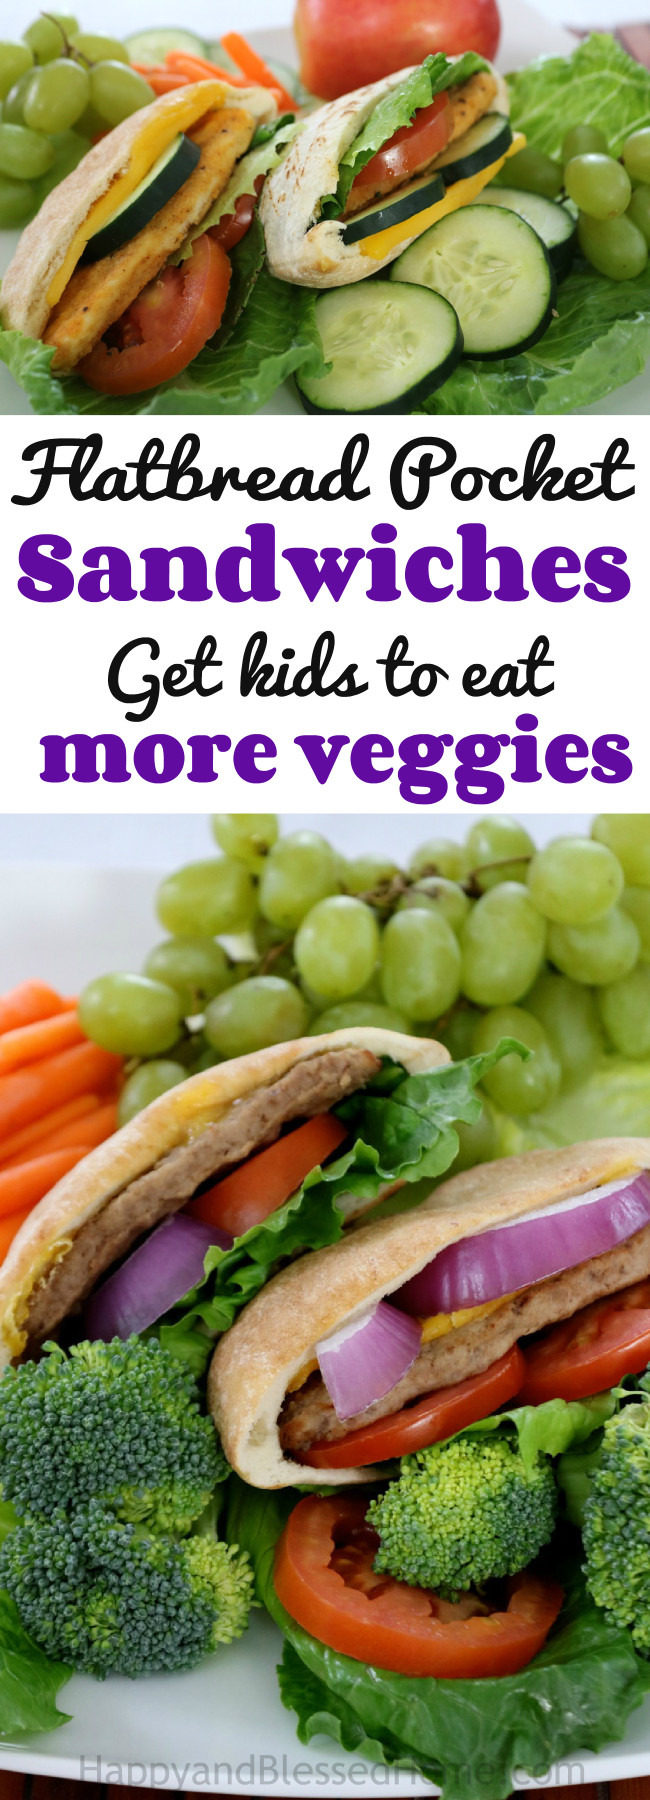 I was trying to get my kids to eat more veggies and I've found the solution! Try these tasty flatbread pocket sandwiches - easy recipe at HappyandBlessedHome.com